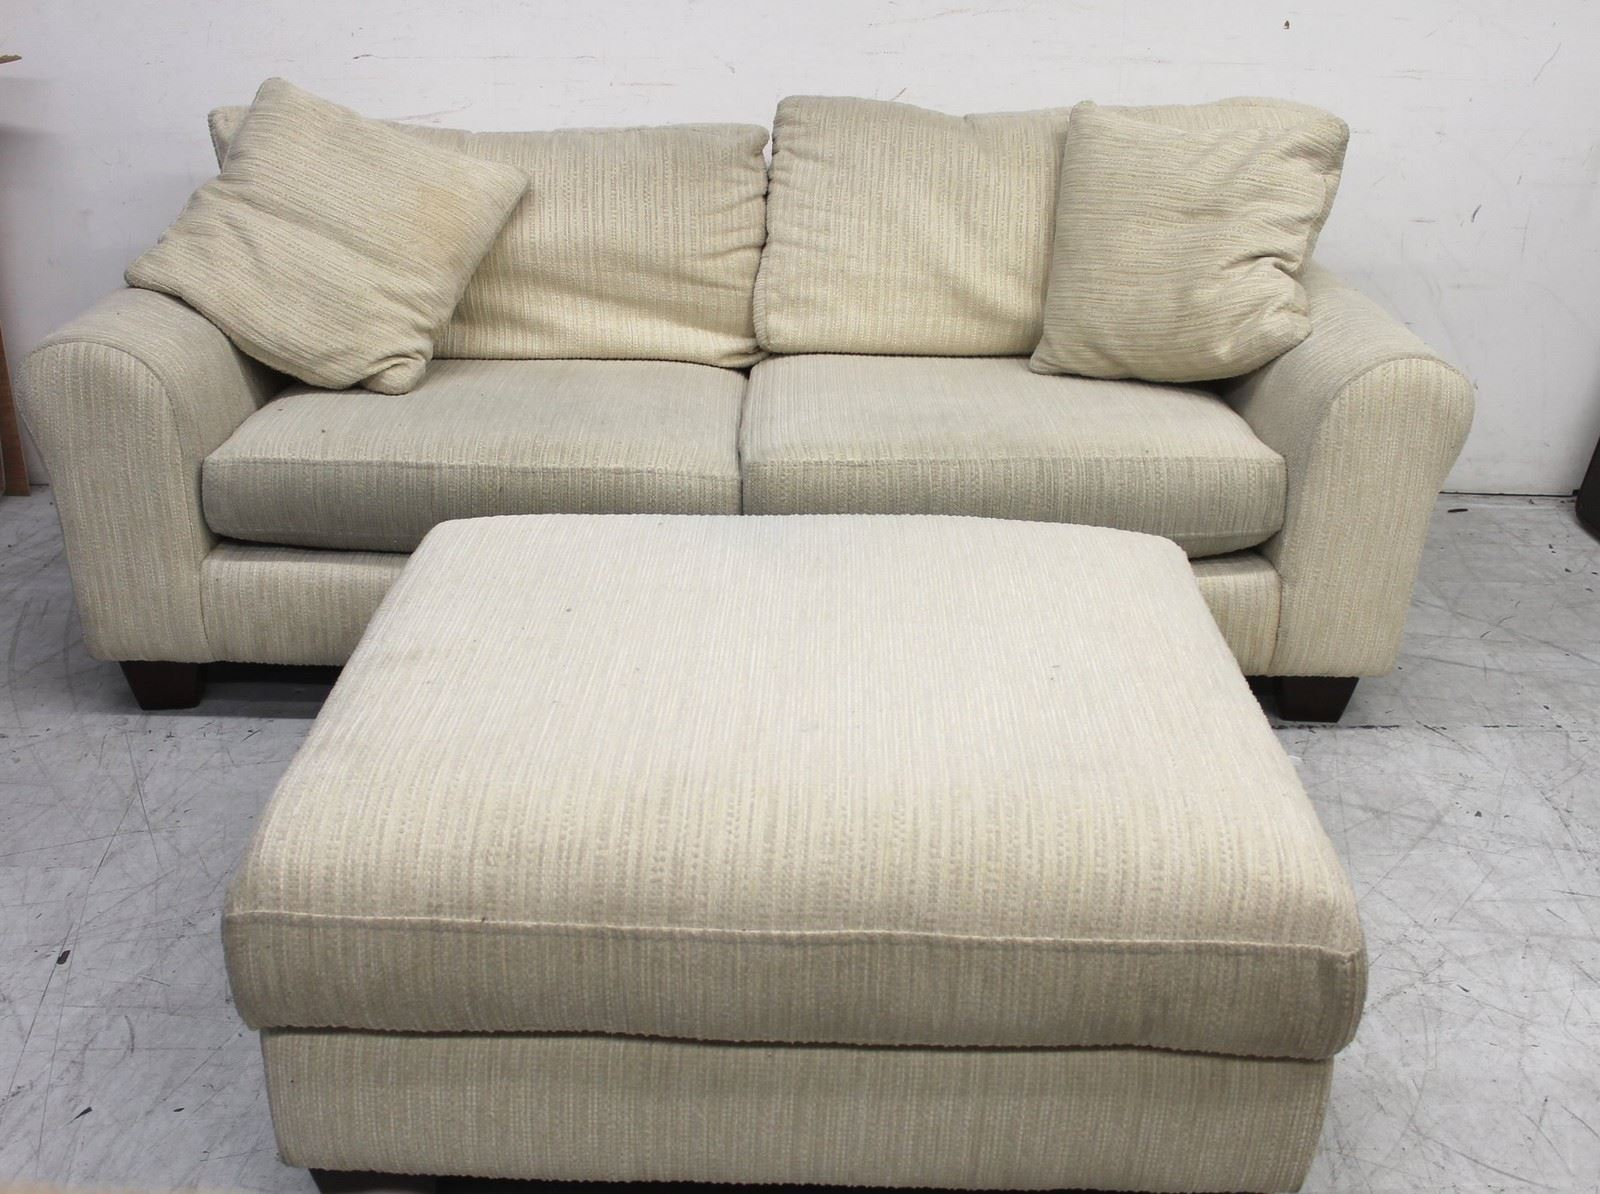 2 3 seater textured cream fabric upholstered sofa with Cream fabric sofa